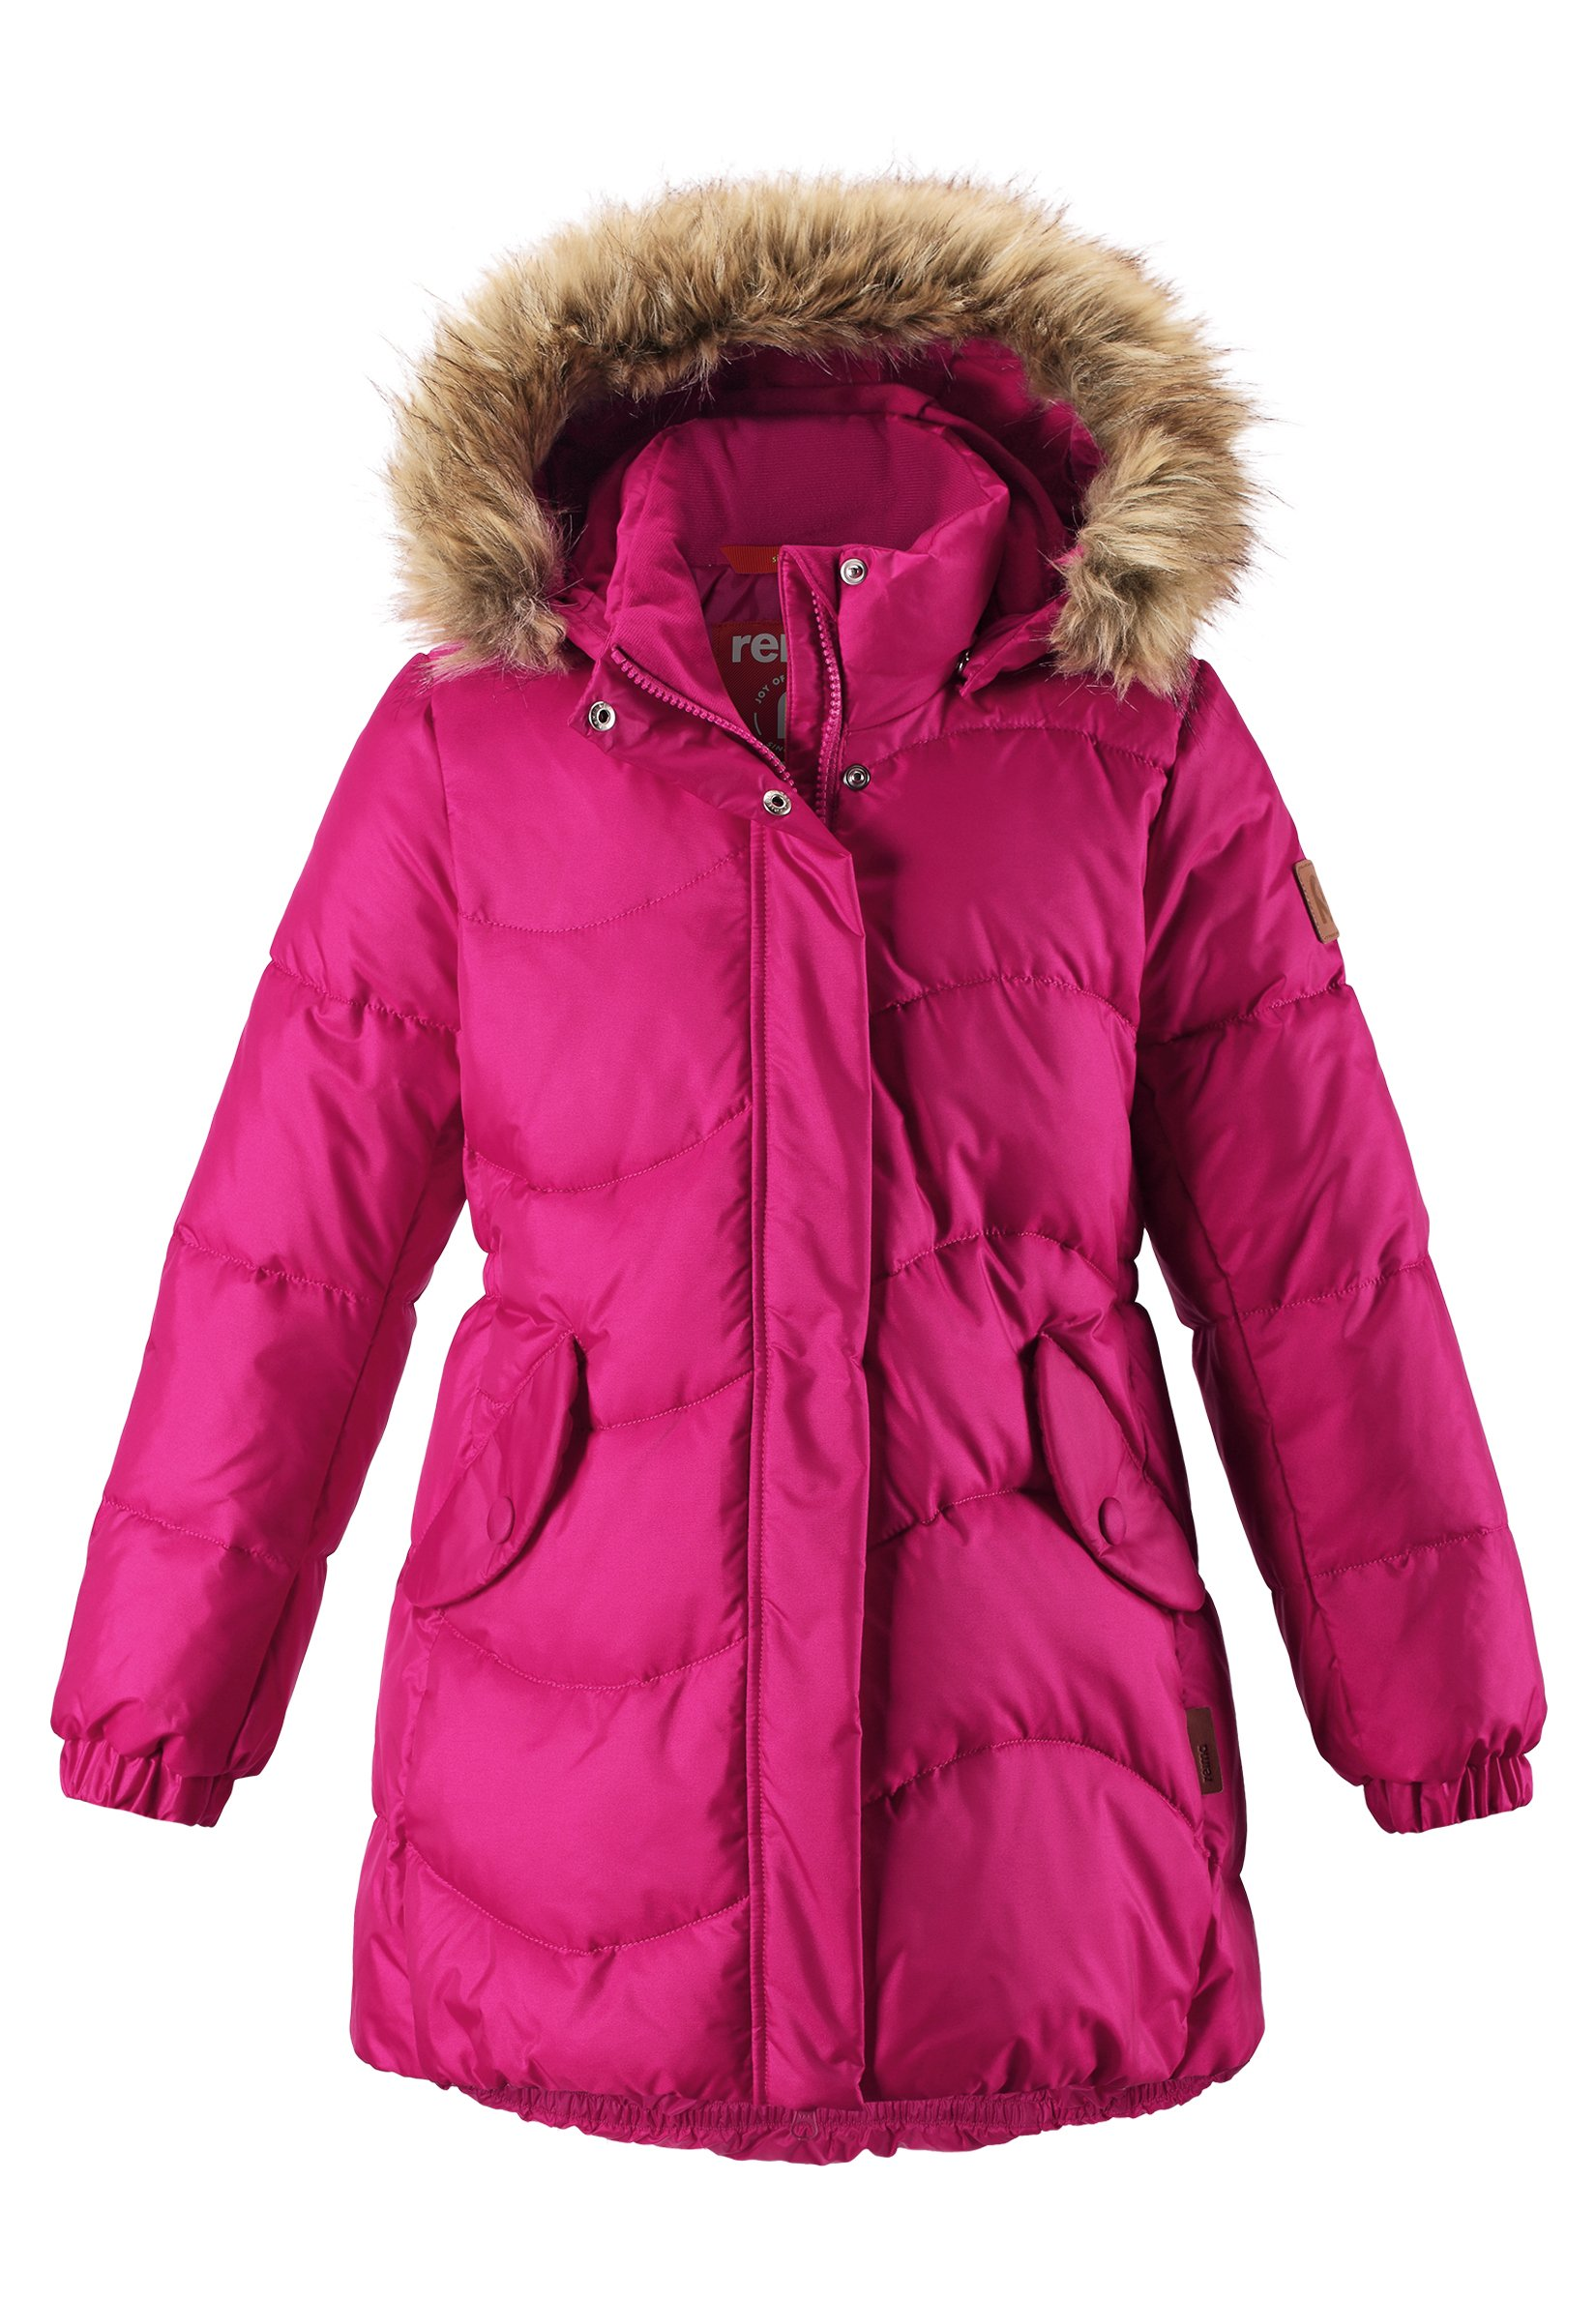 Köp Reima Winter Jacket Sula